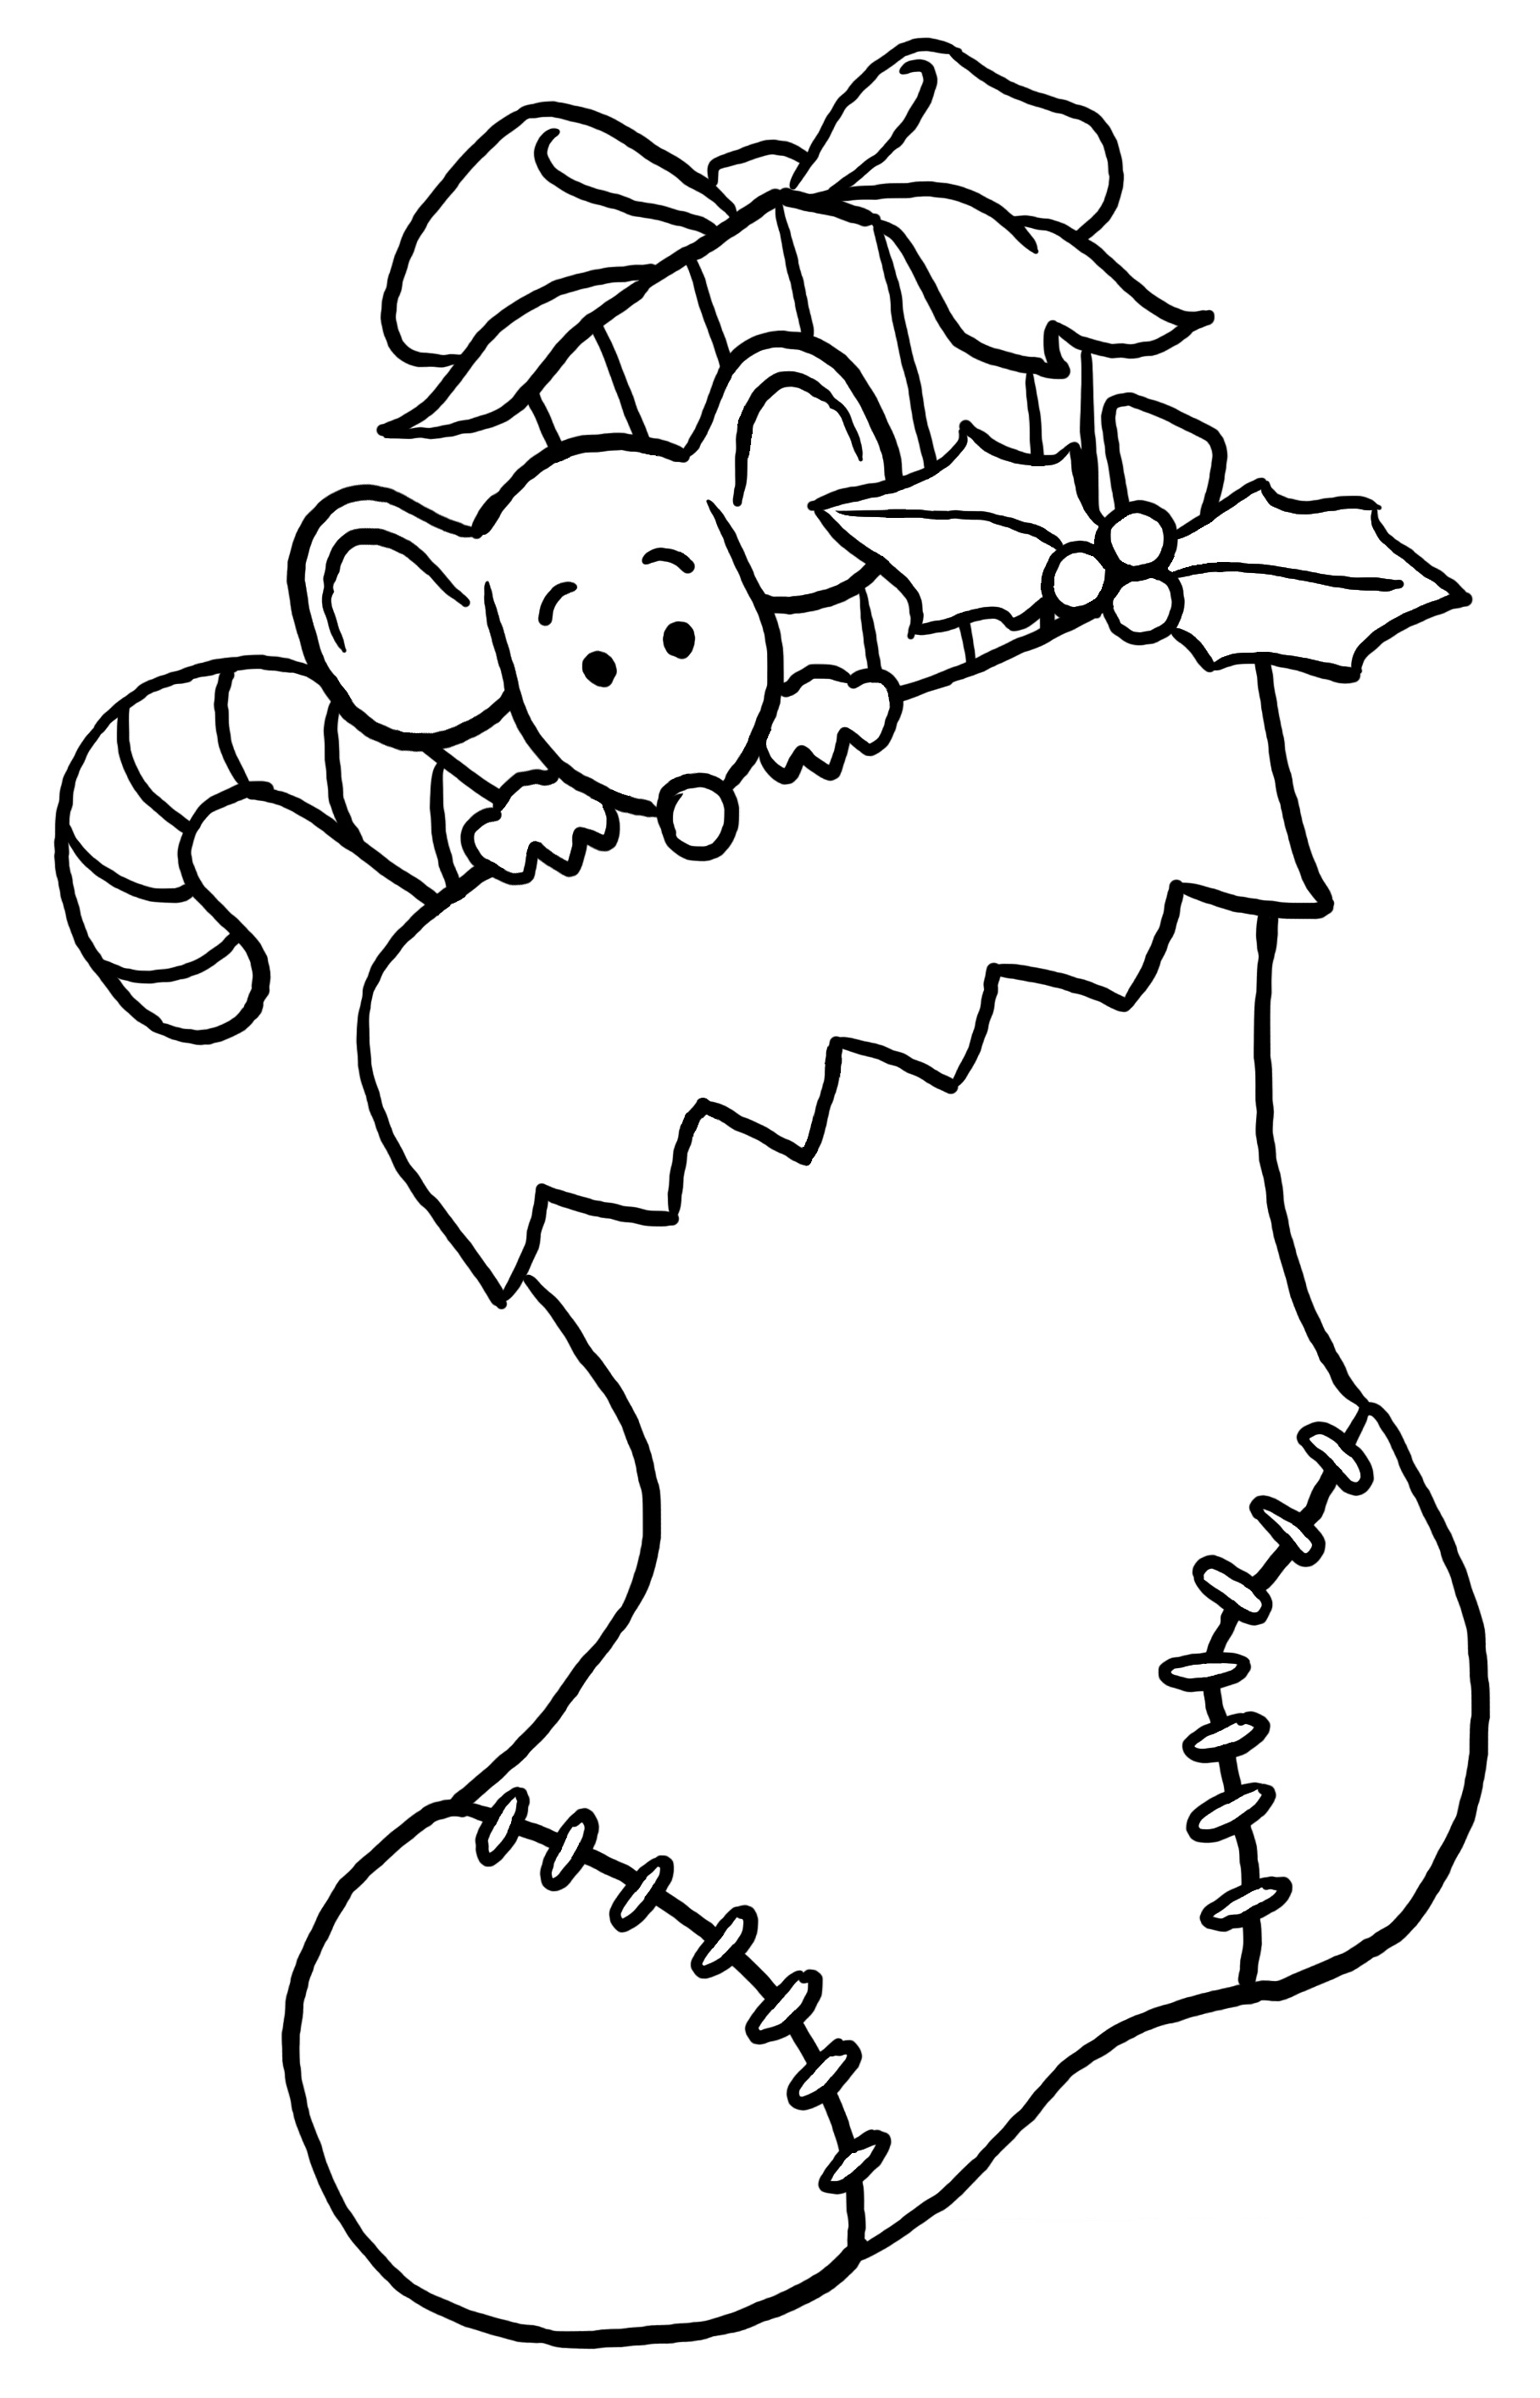 colouring pages christmas free merry christmas coloring pages for kids printable colouring pages free christmas